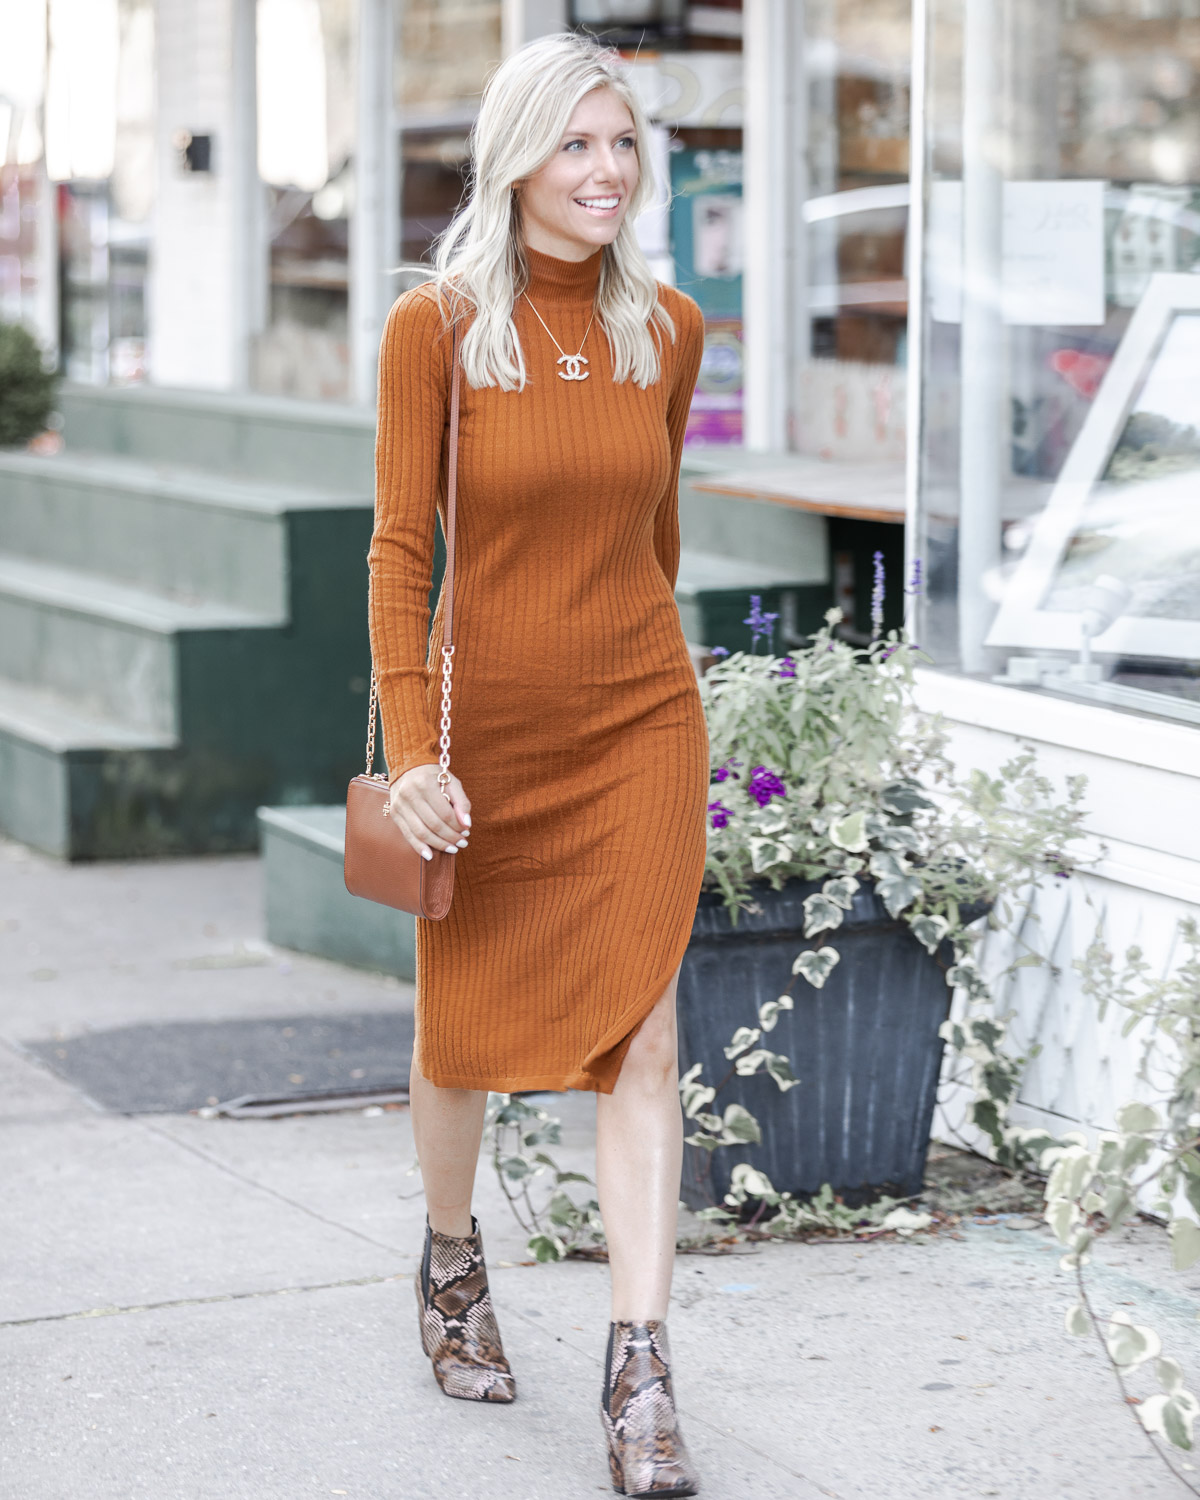 forever21 sweater dress under $30 The Glamorous Gal